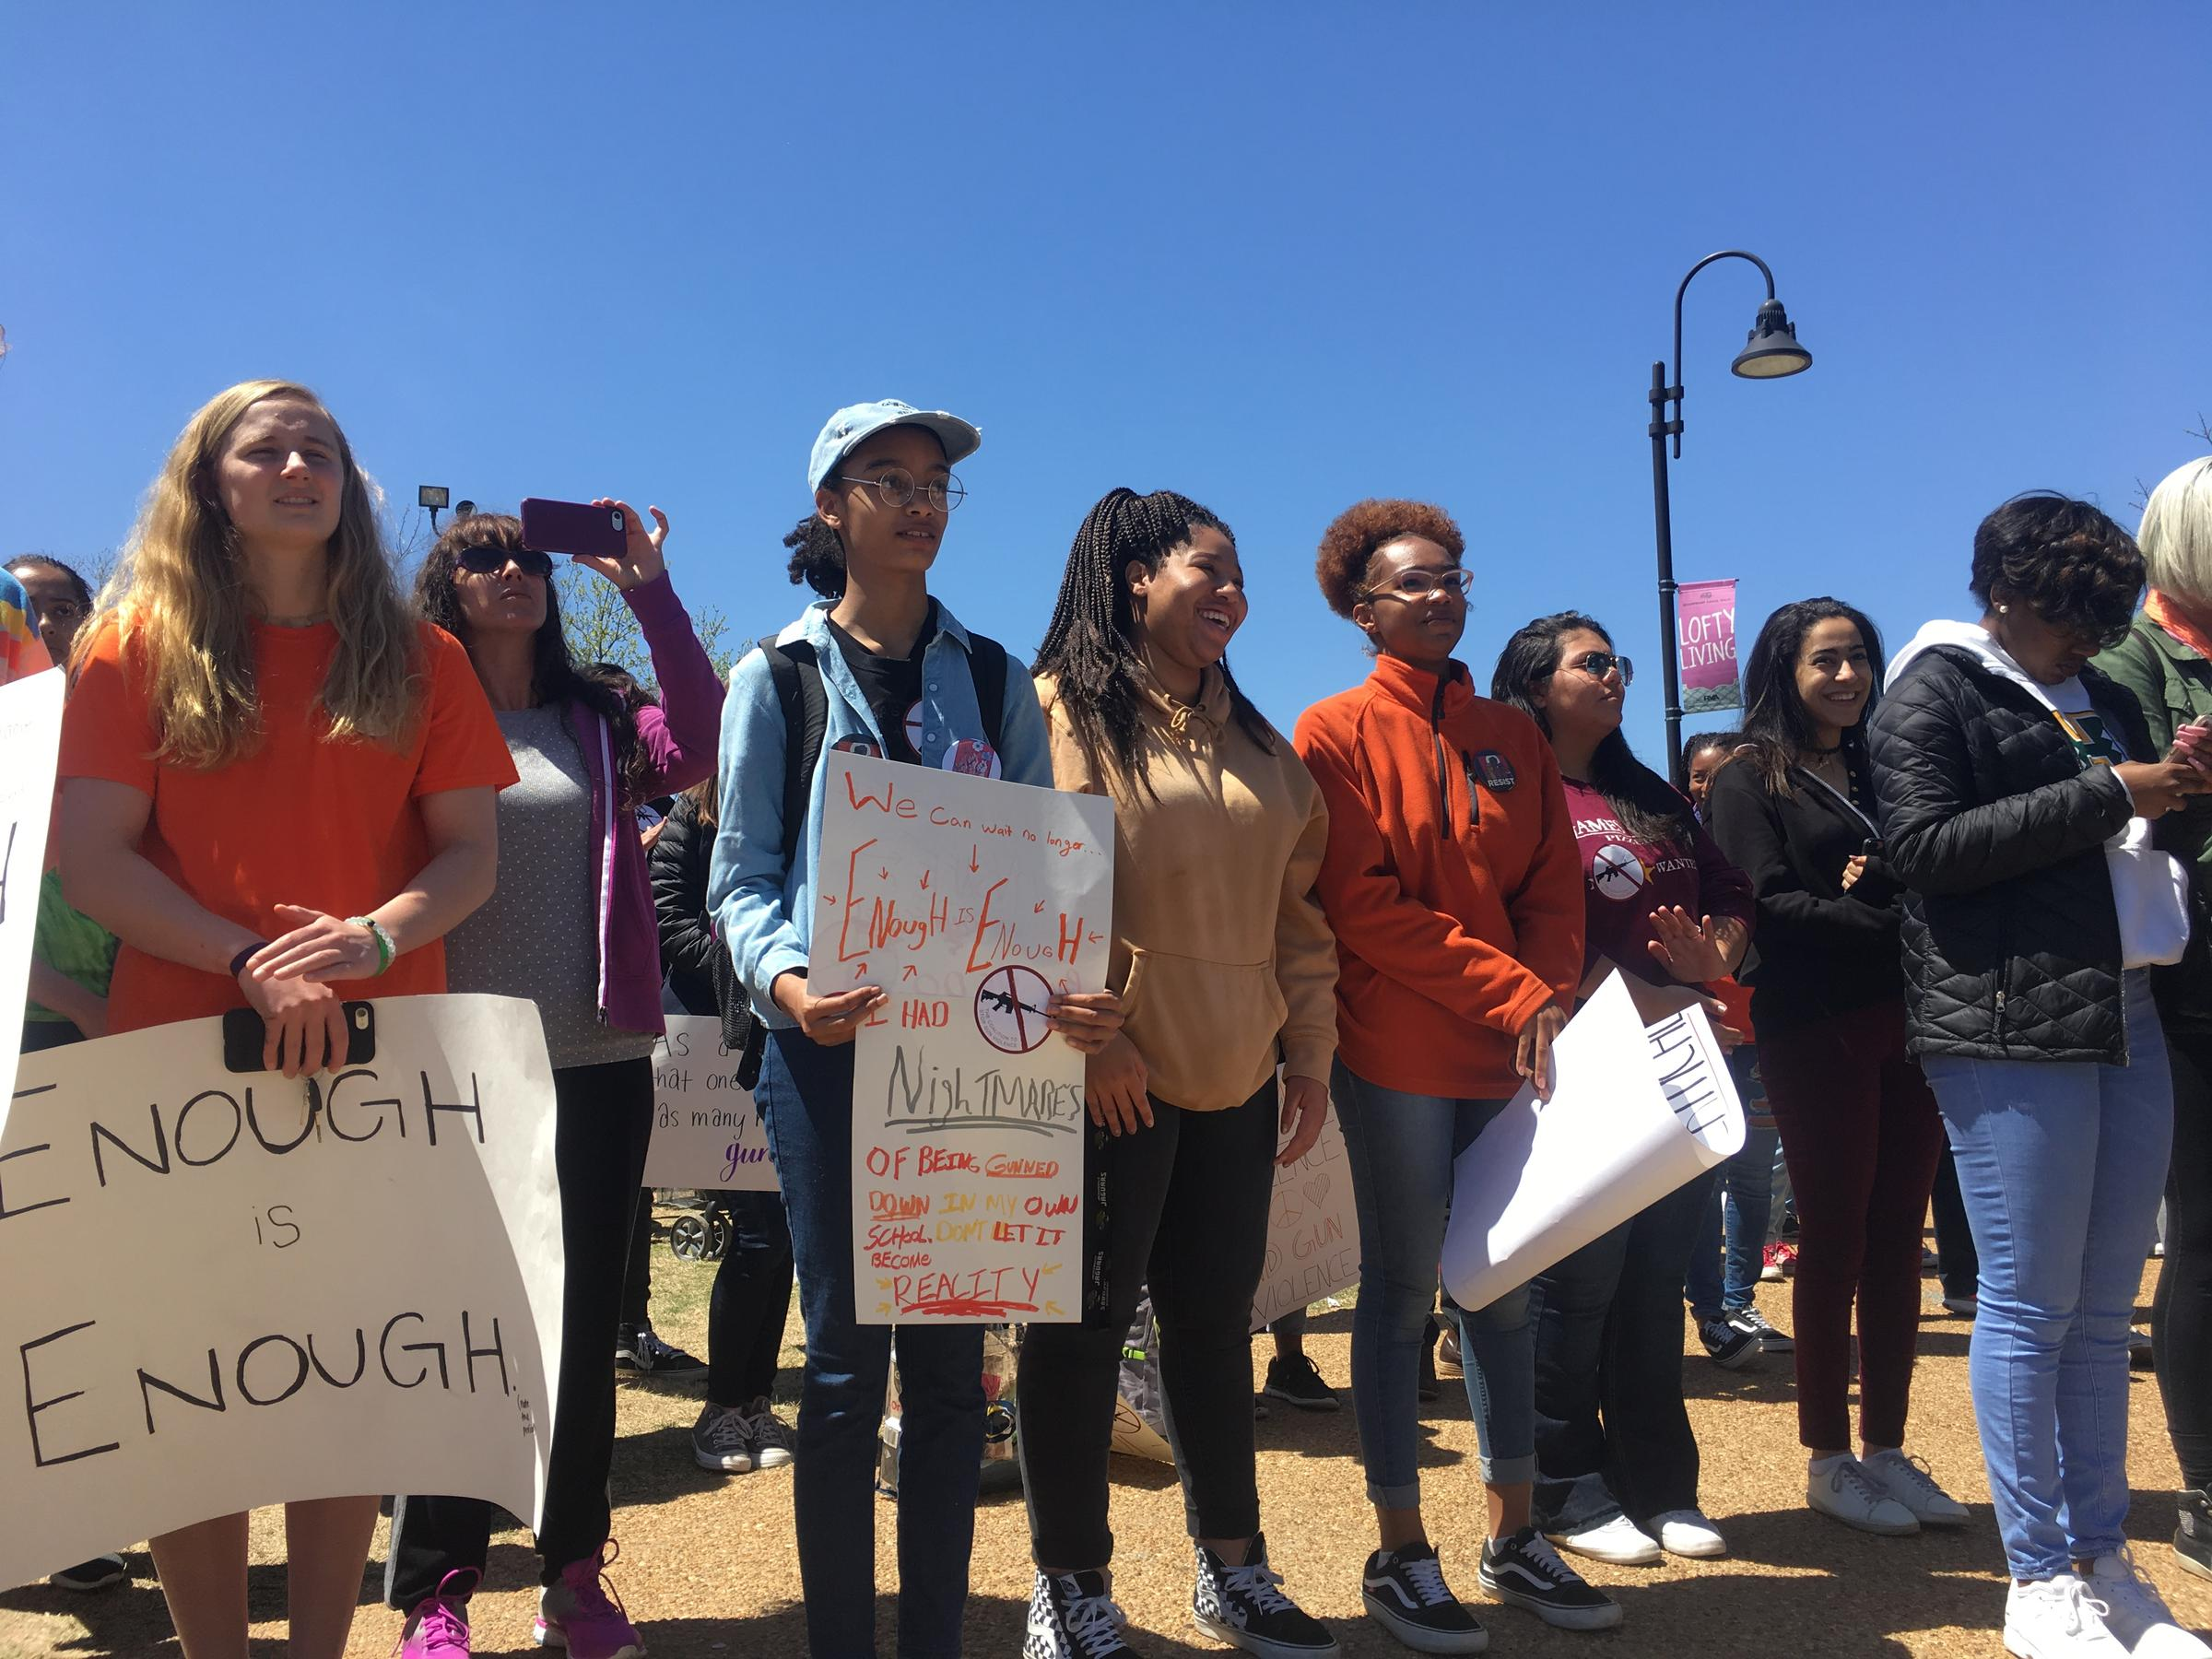 Students across Knox County call for change on National Walkout Day